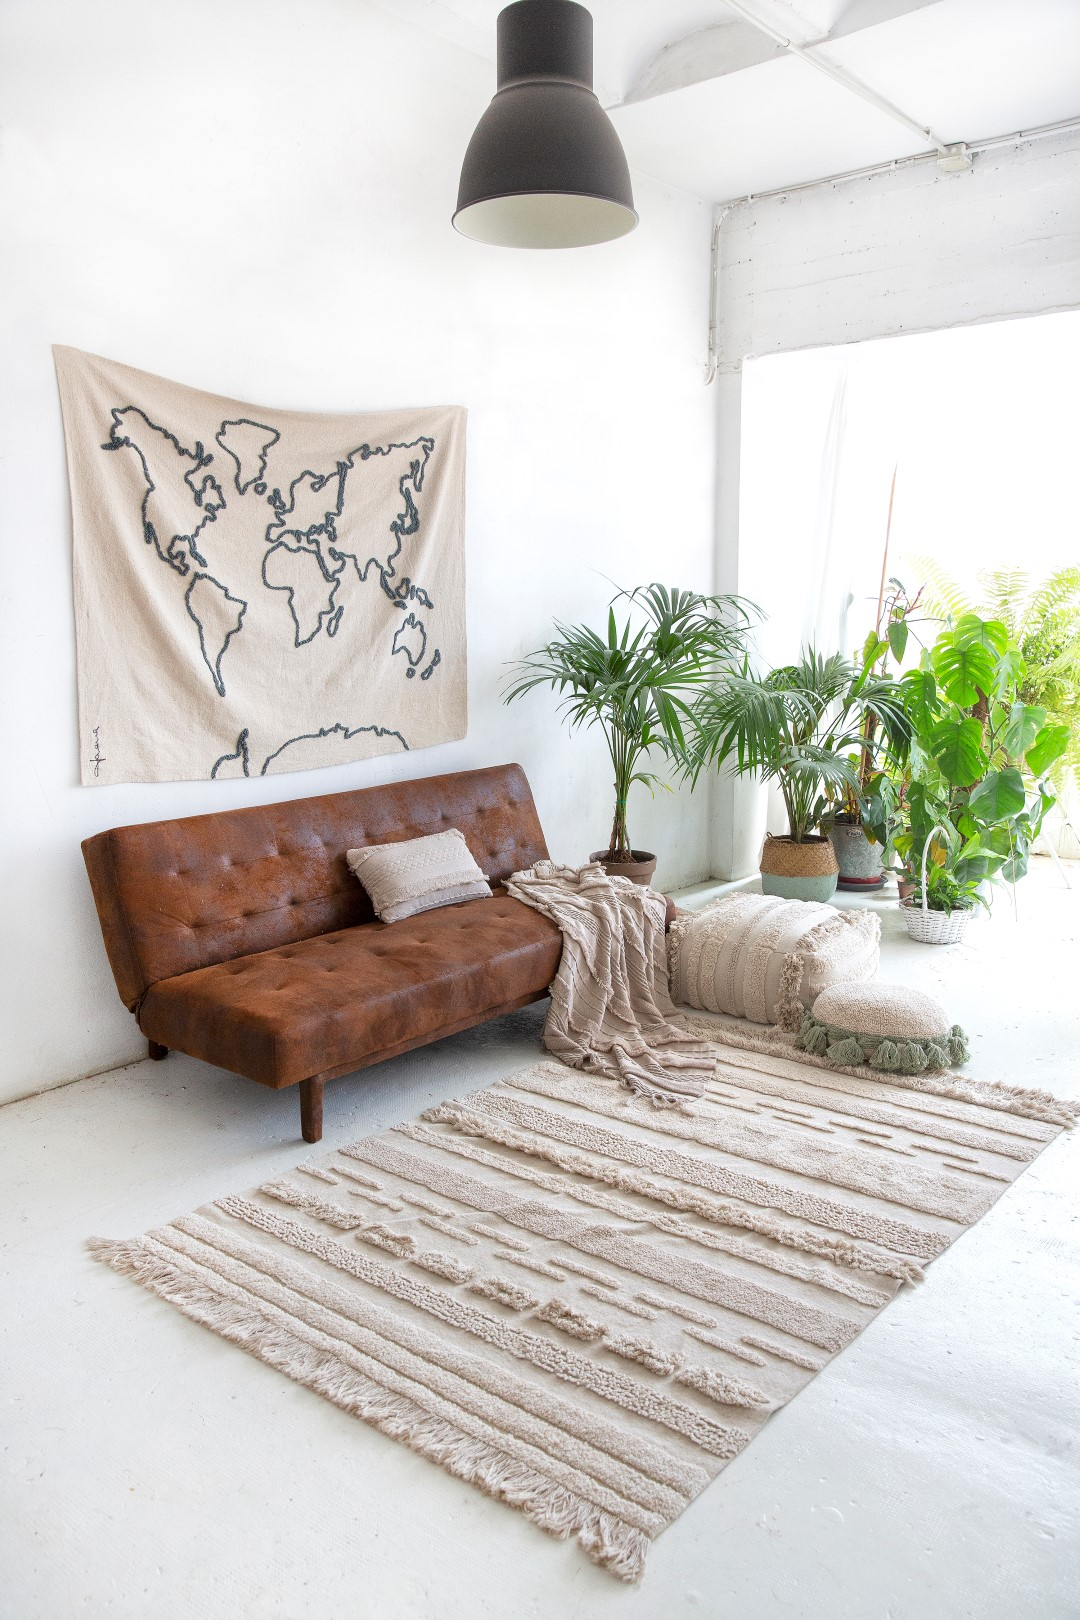 White room with leather sofa and textured rug